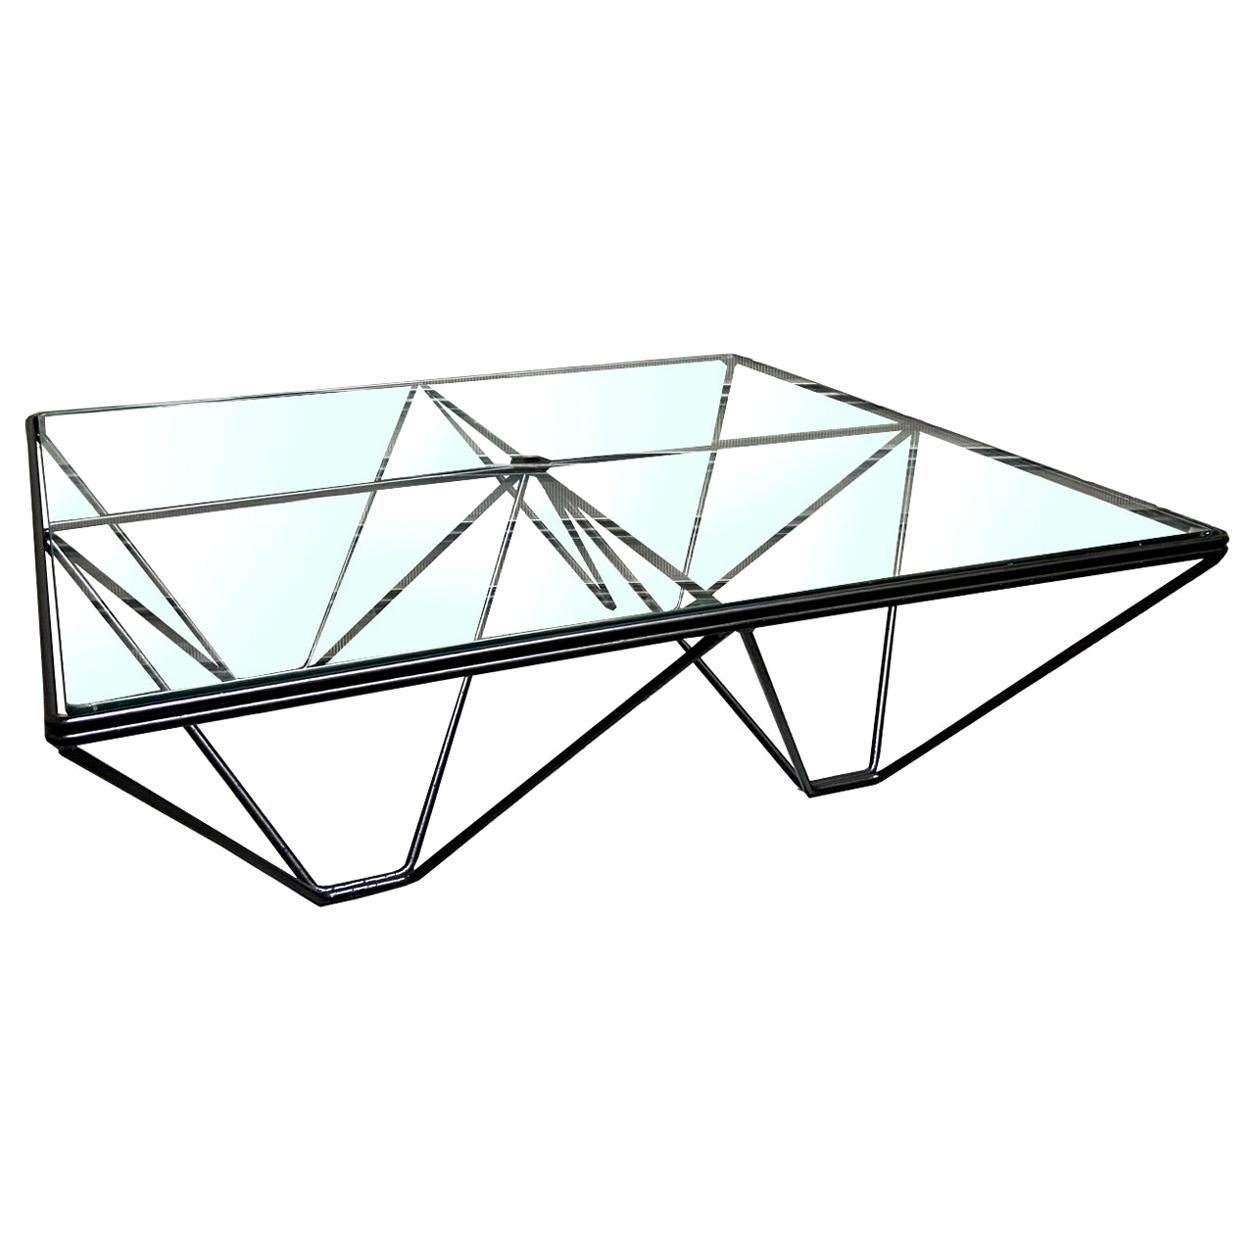 Coffee Table, Style of Paolo Piva for B&B Italia, circa 1980s